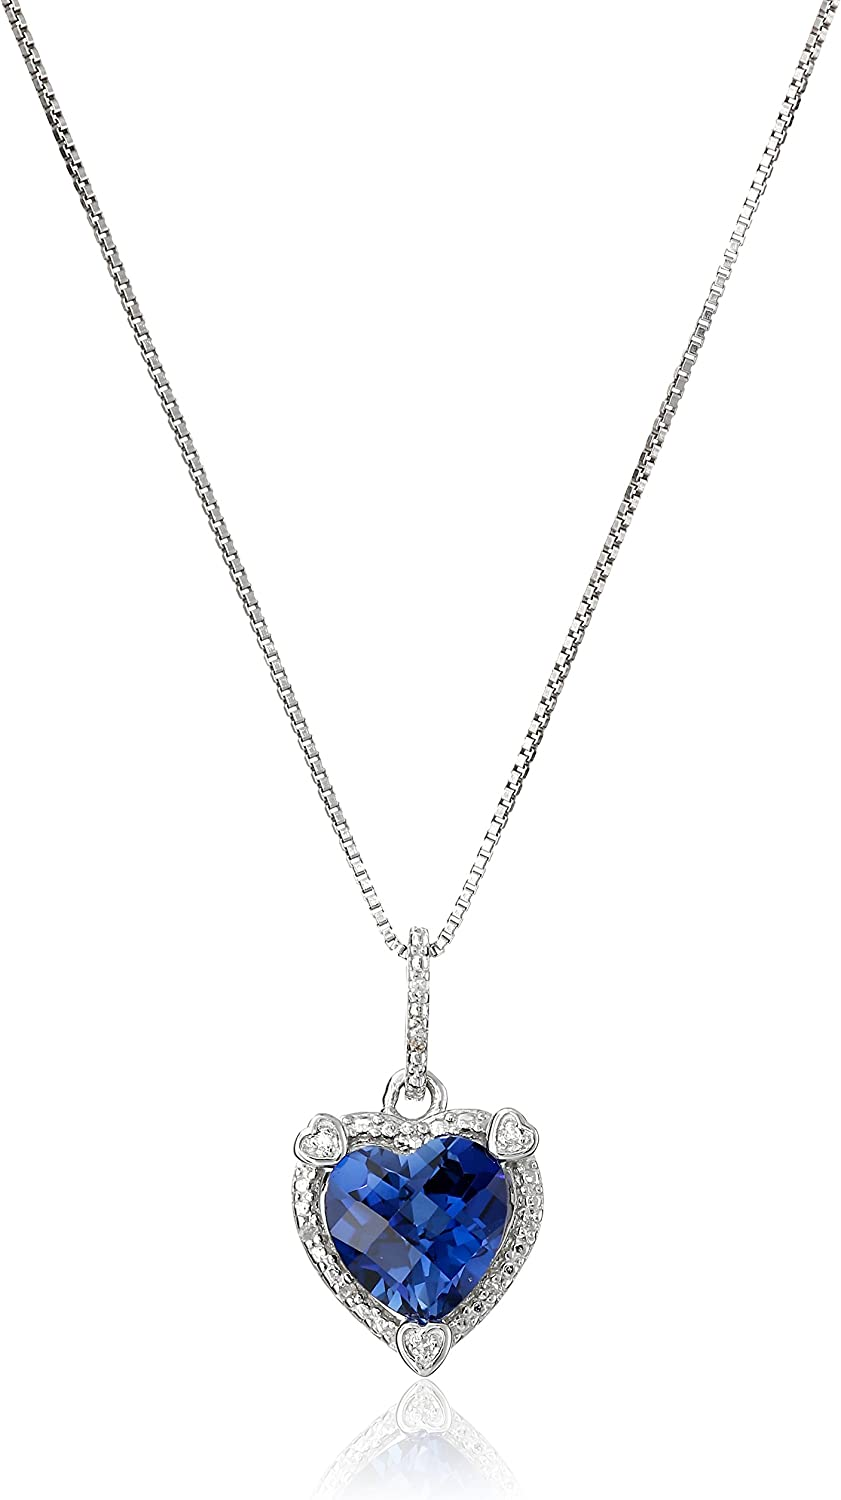 Created Sapphire Heart Pendant Necklace in Silver with Chain